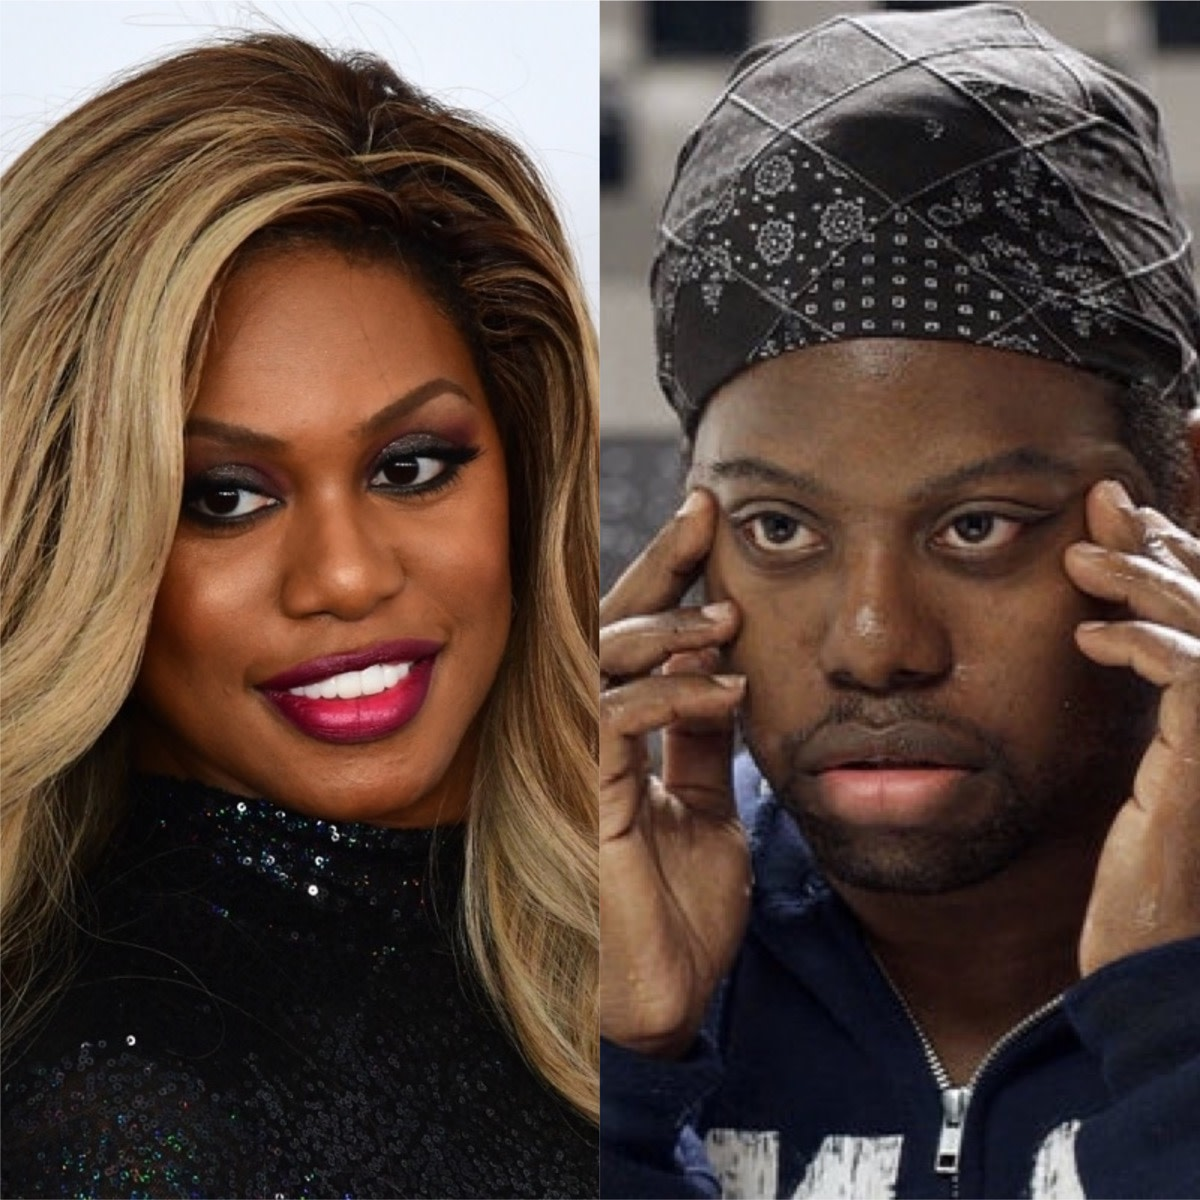 Laverne's twin brother played in Orange is the New Black